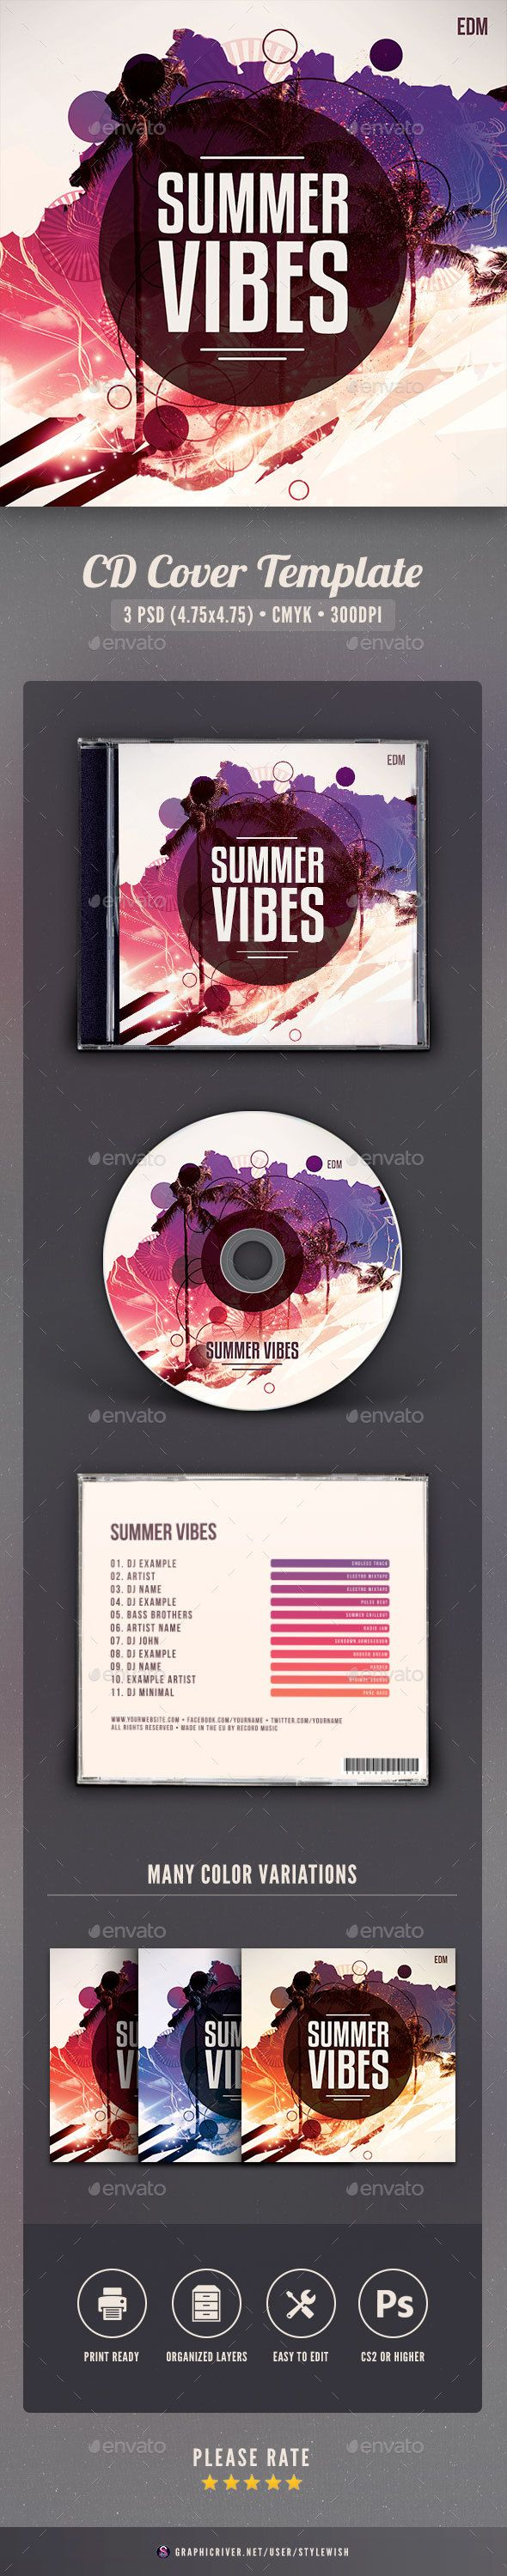 Cd box template download free vector art stock graphics amp images - Summer Vibes Cd Cover Artwork